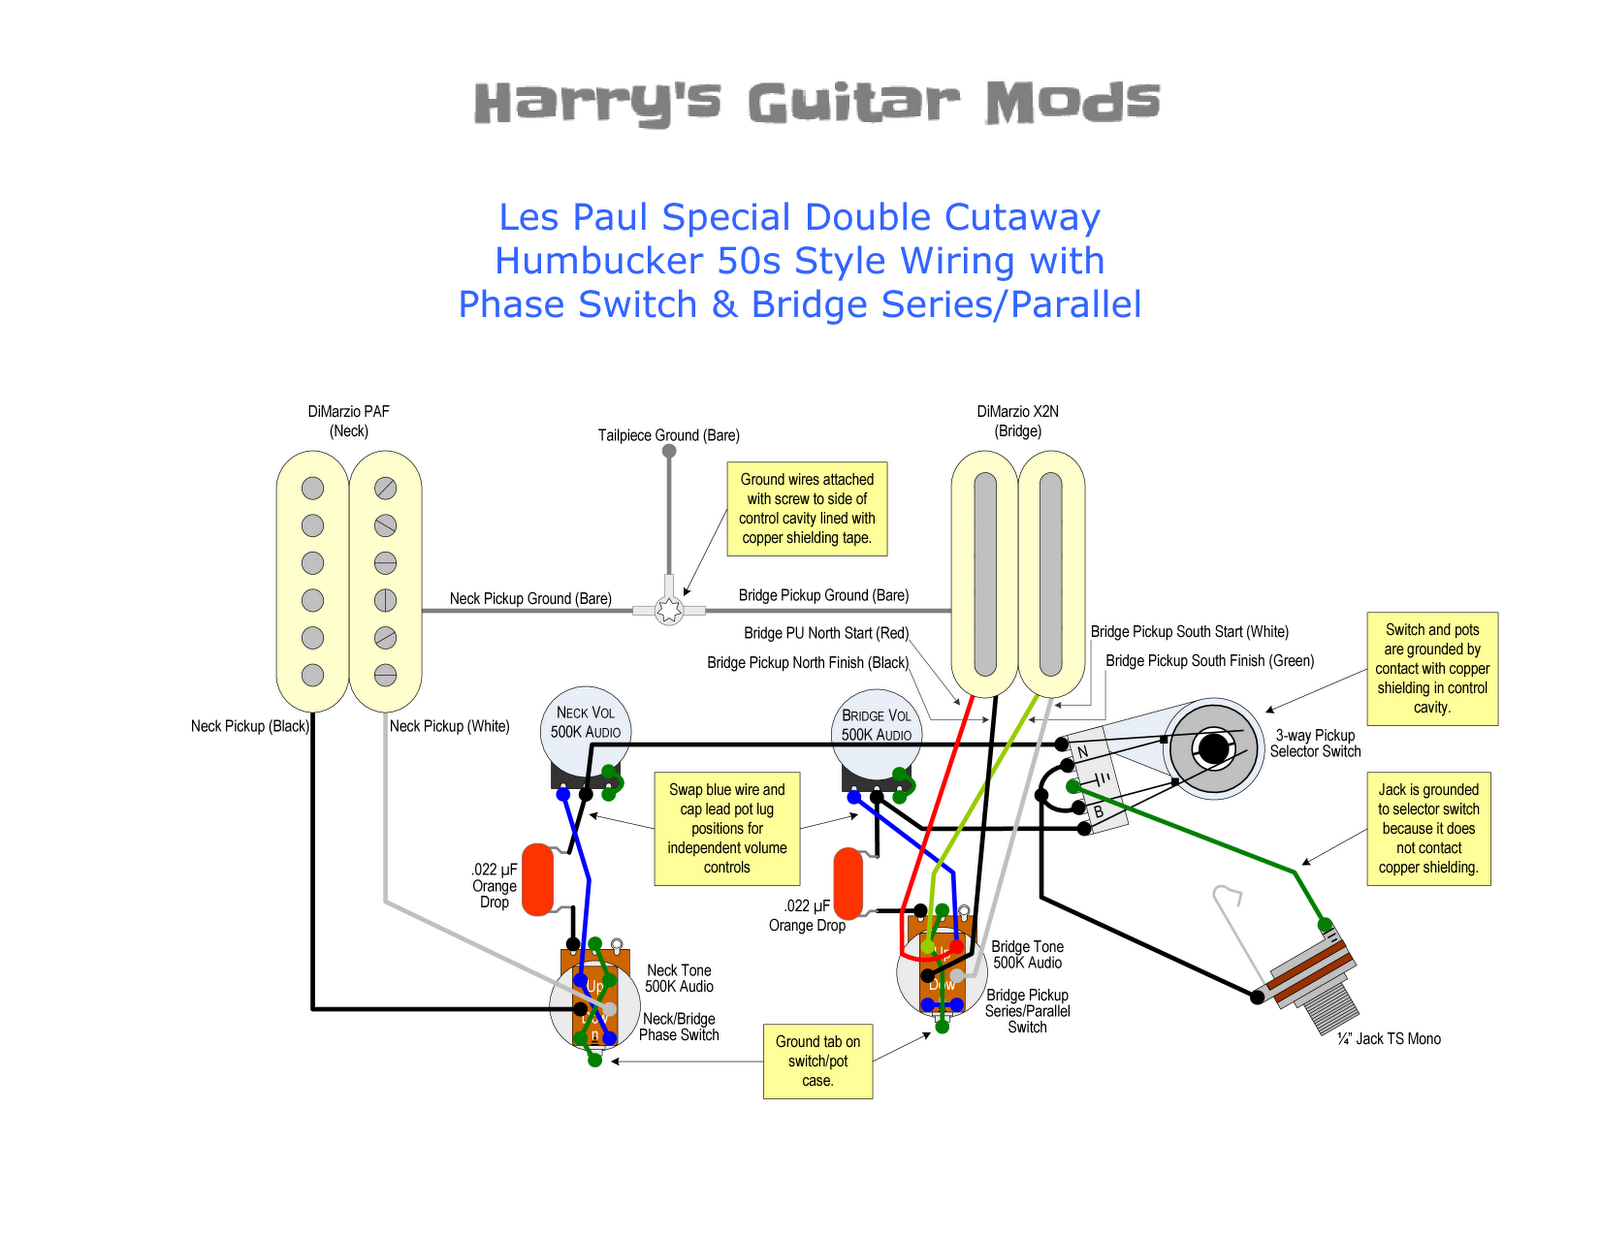 LPS+Wiring+Diagram harry's guitar mods controls wiring upgrade pots wiring diagram at crackthecode.co